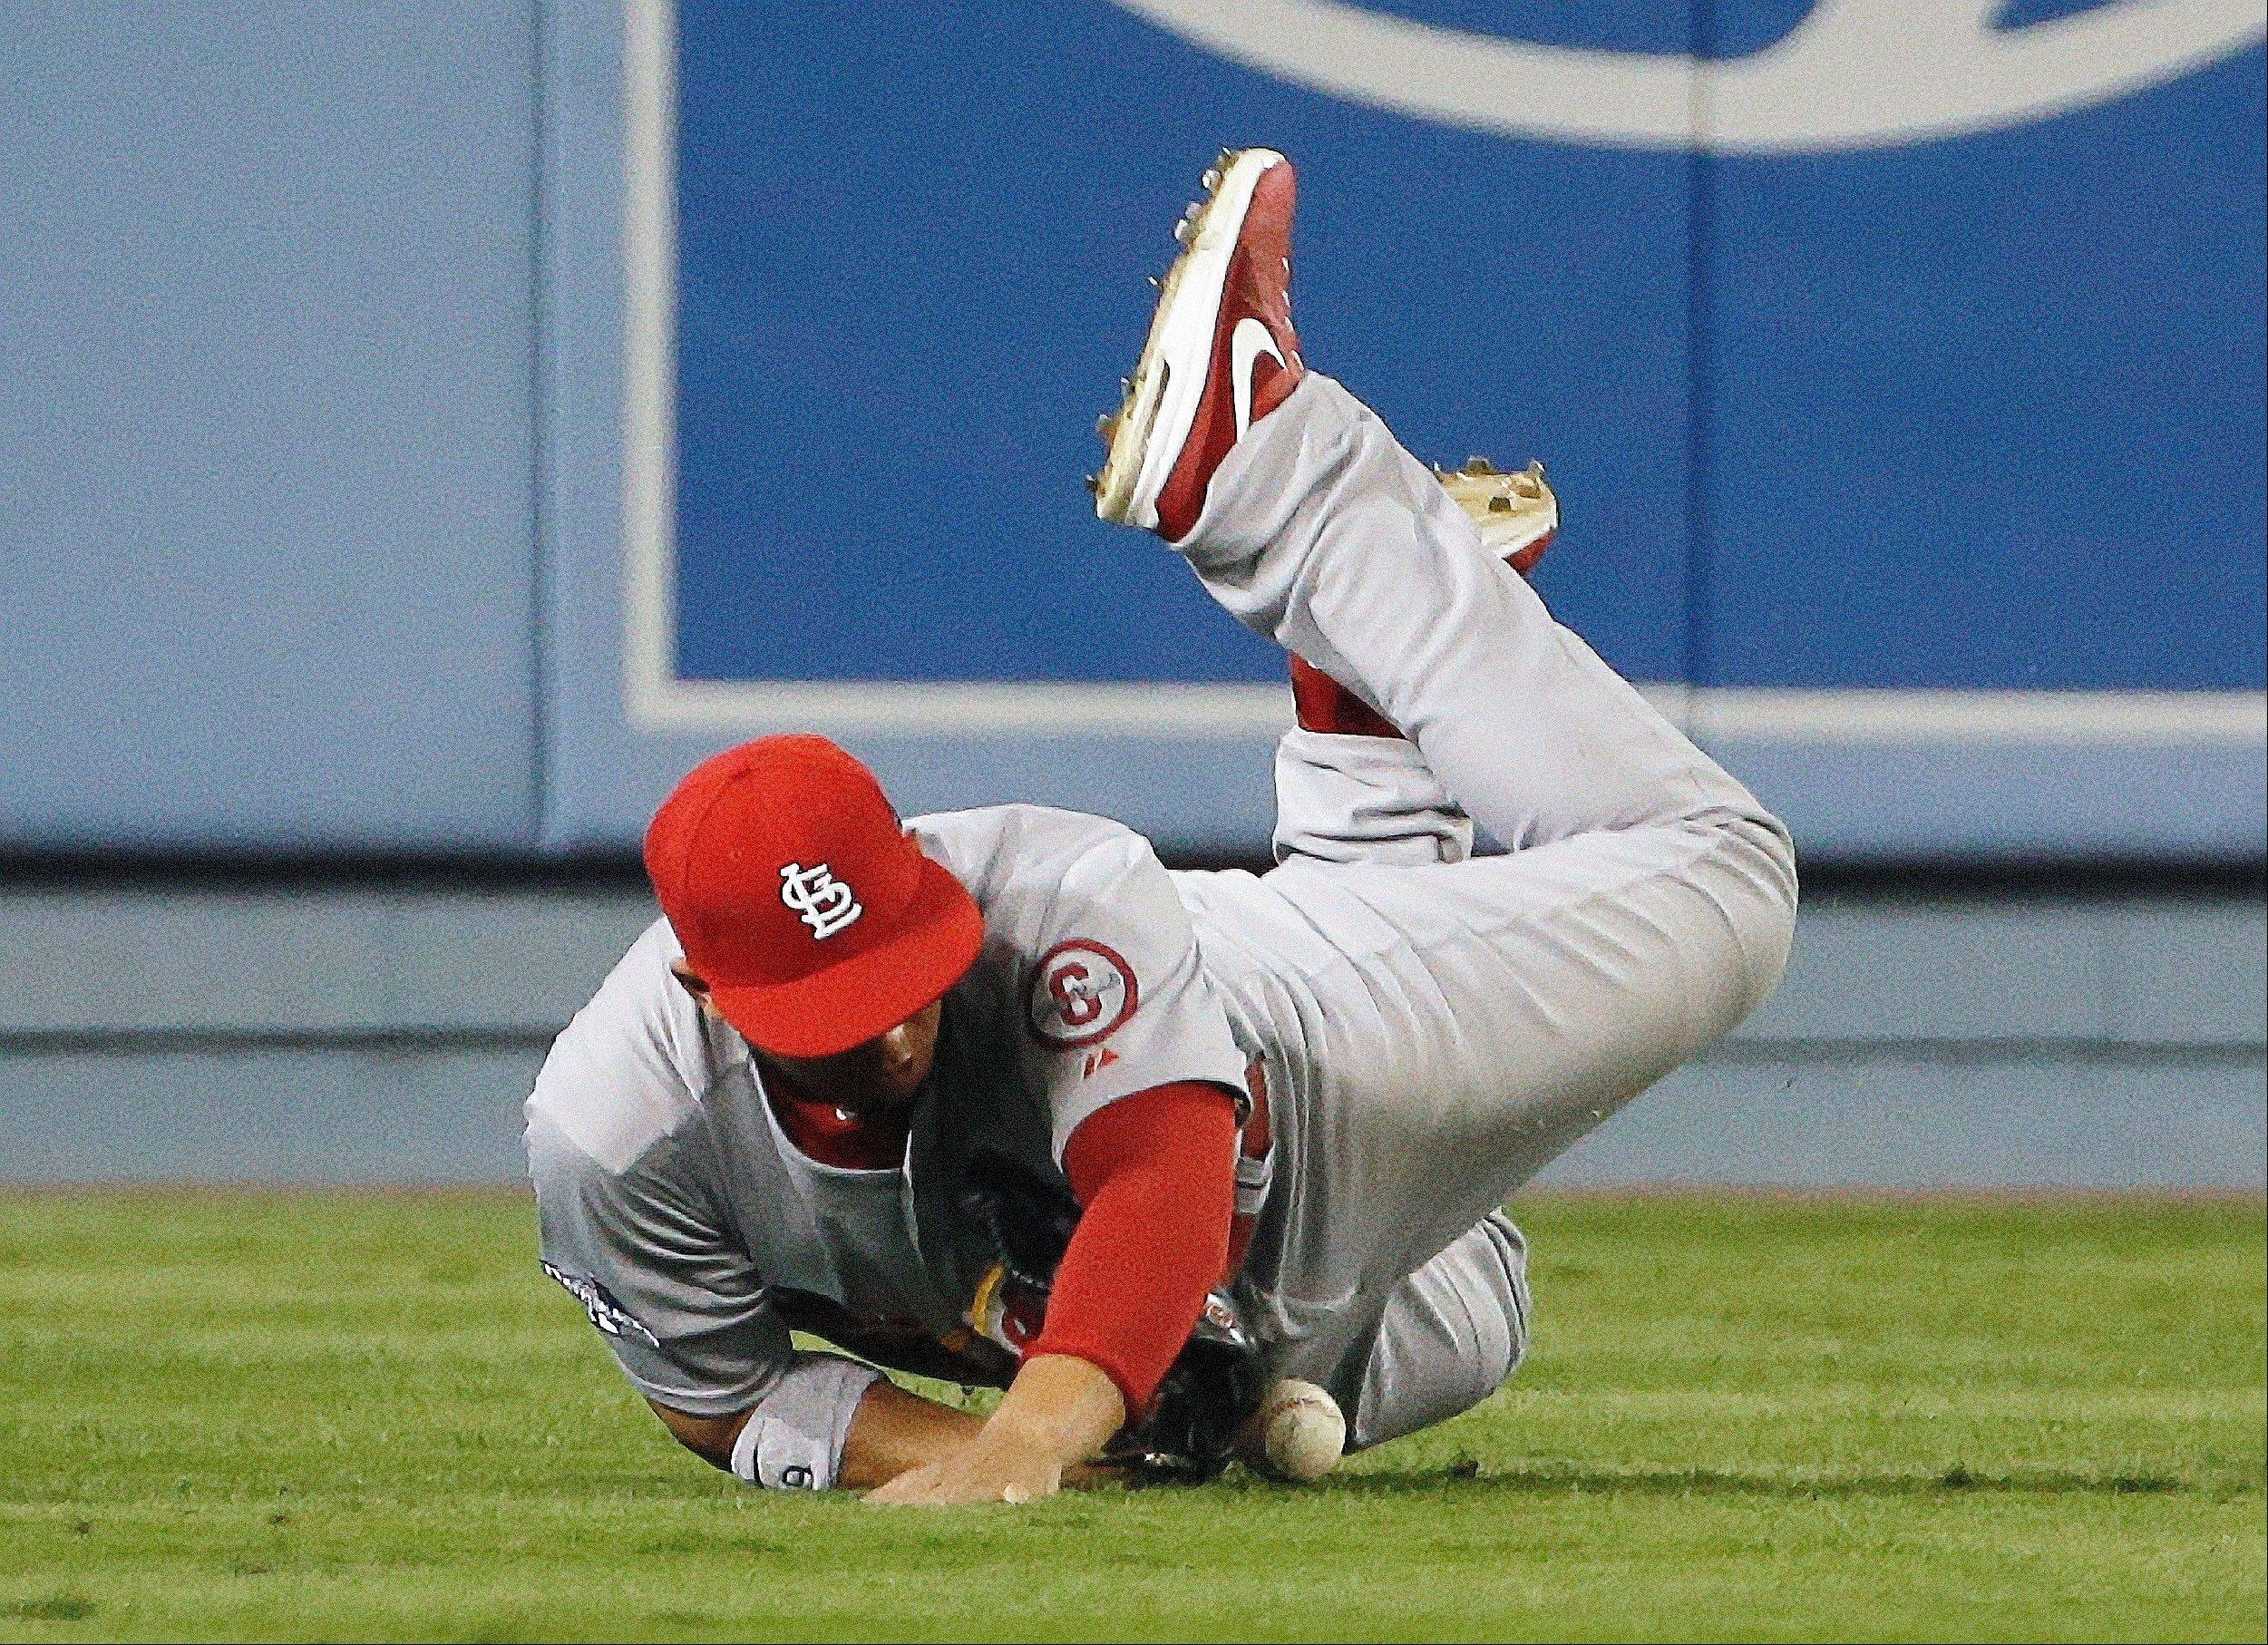 The Cardinals' Jon Jay can't catch a ball hit by the Dodgers' Carl Crawford during the eighth inning.